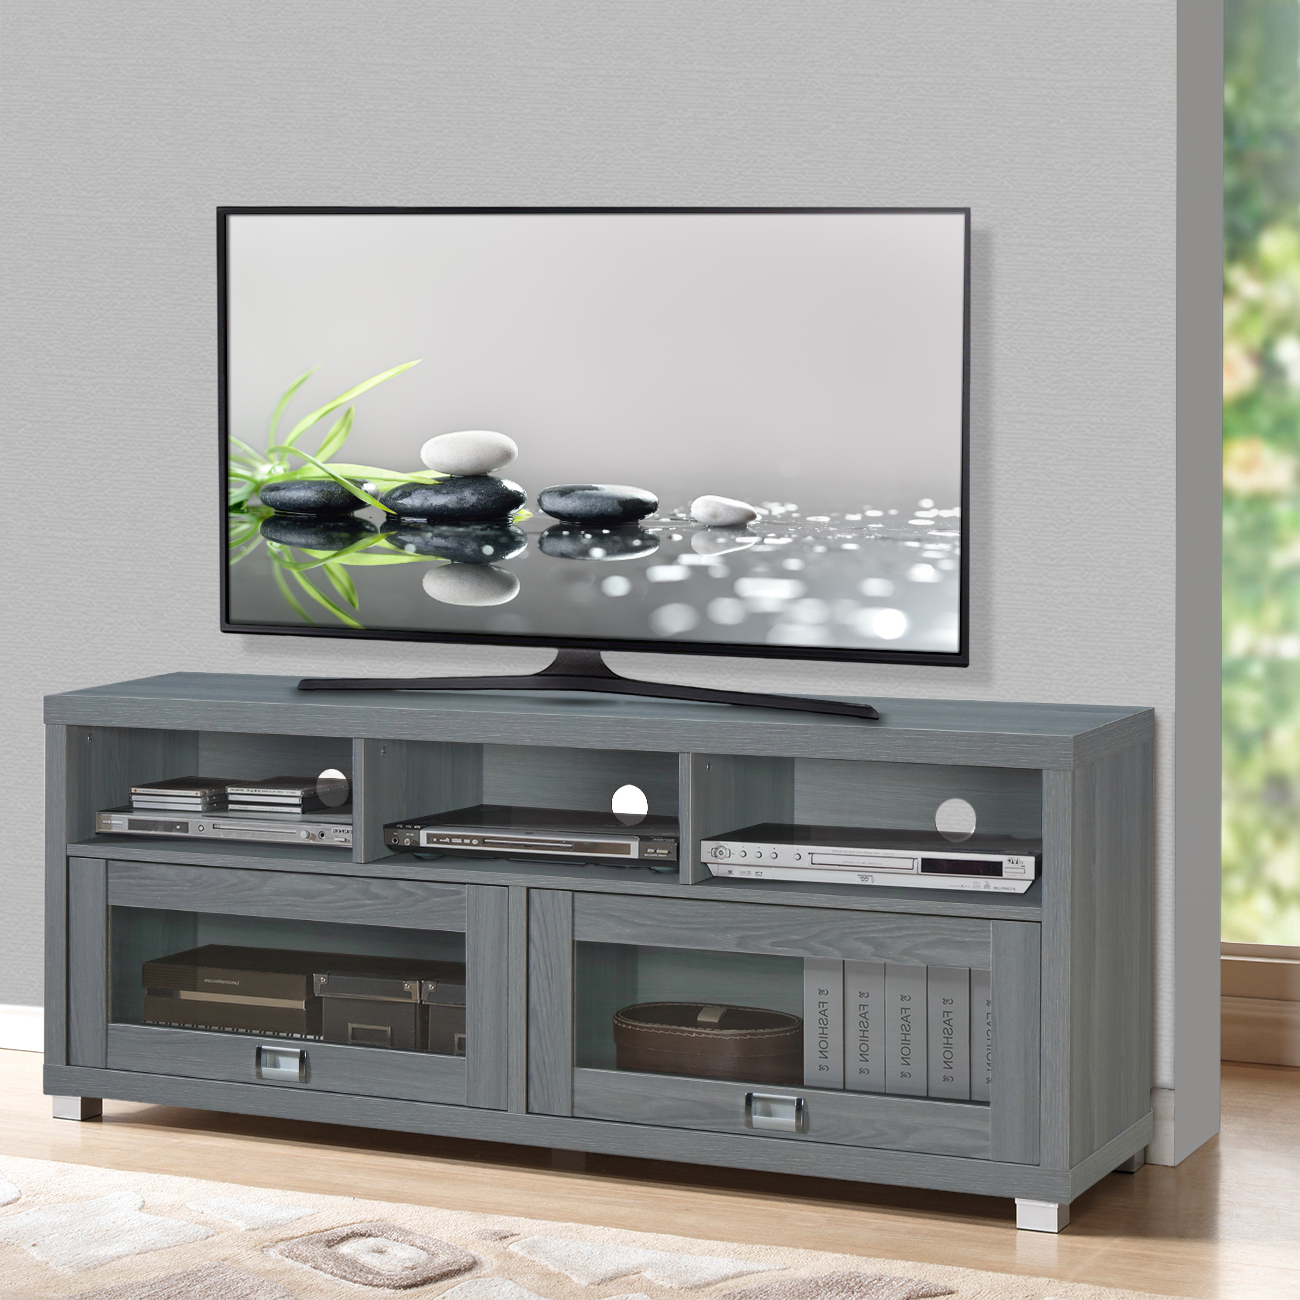 """Flat Screen Tv Stand Up To 75 Inch 50 55 60 65 70 55in With Regard To Preferred Allegra Tv Stands For Tvs Up To 50"""" (View 19 of 25)"""